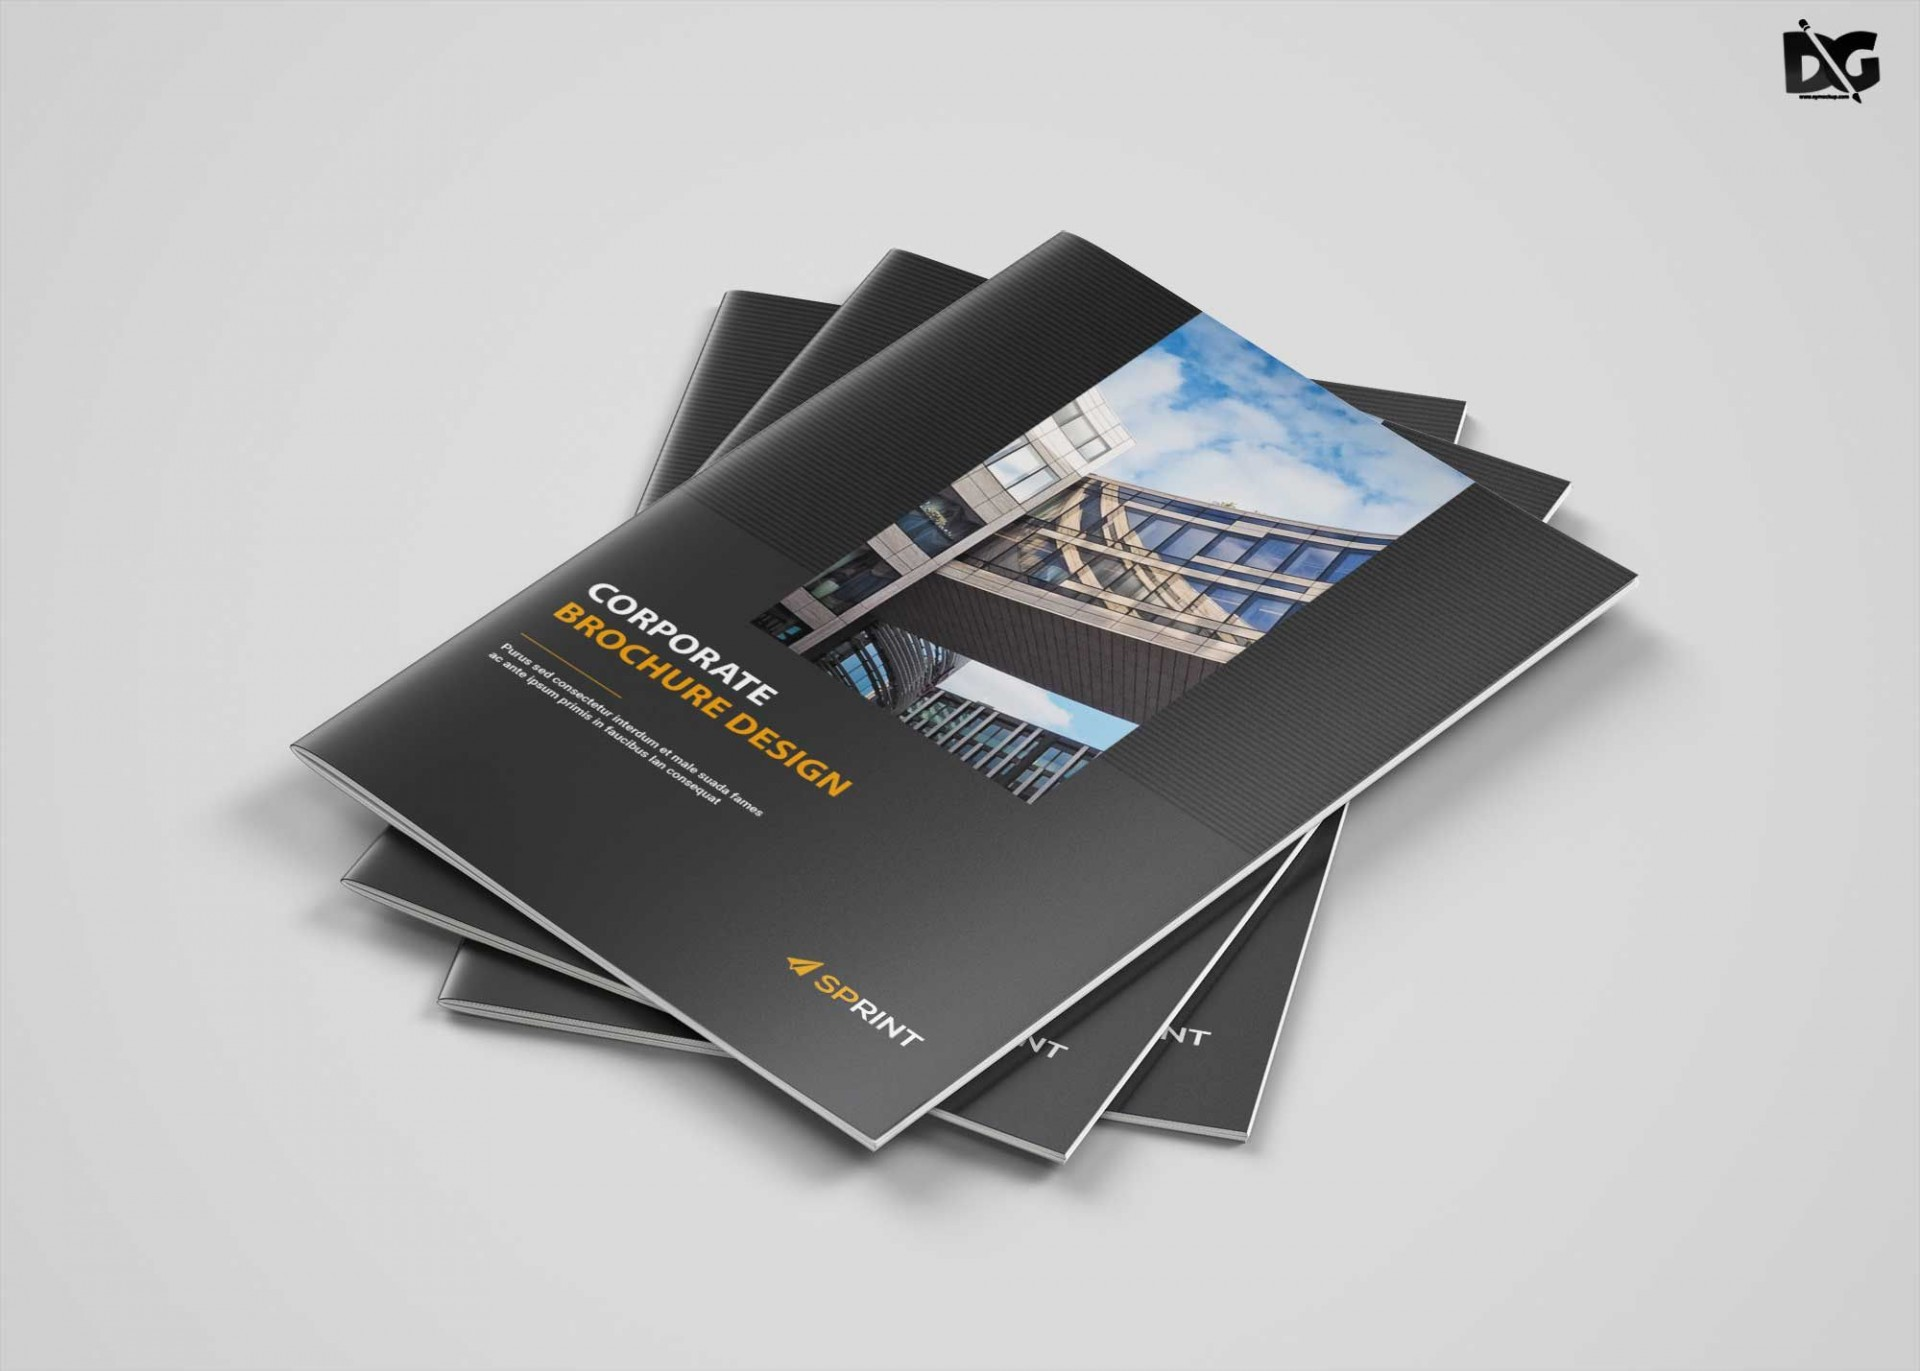 004 Awful Brochure Design Template Psd Free Download Inspiration  Hotel1920